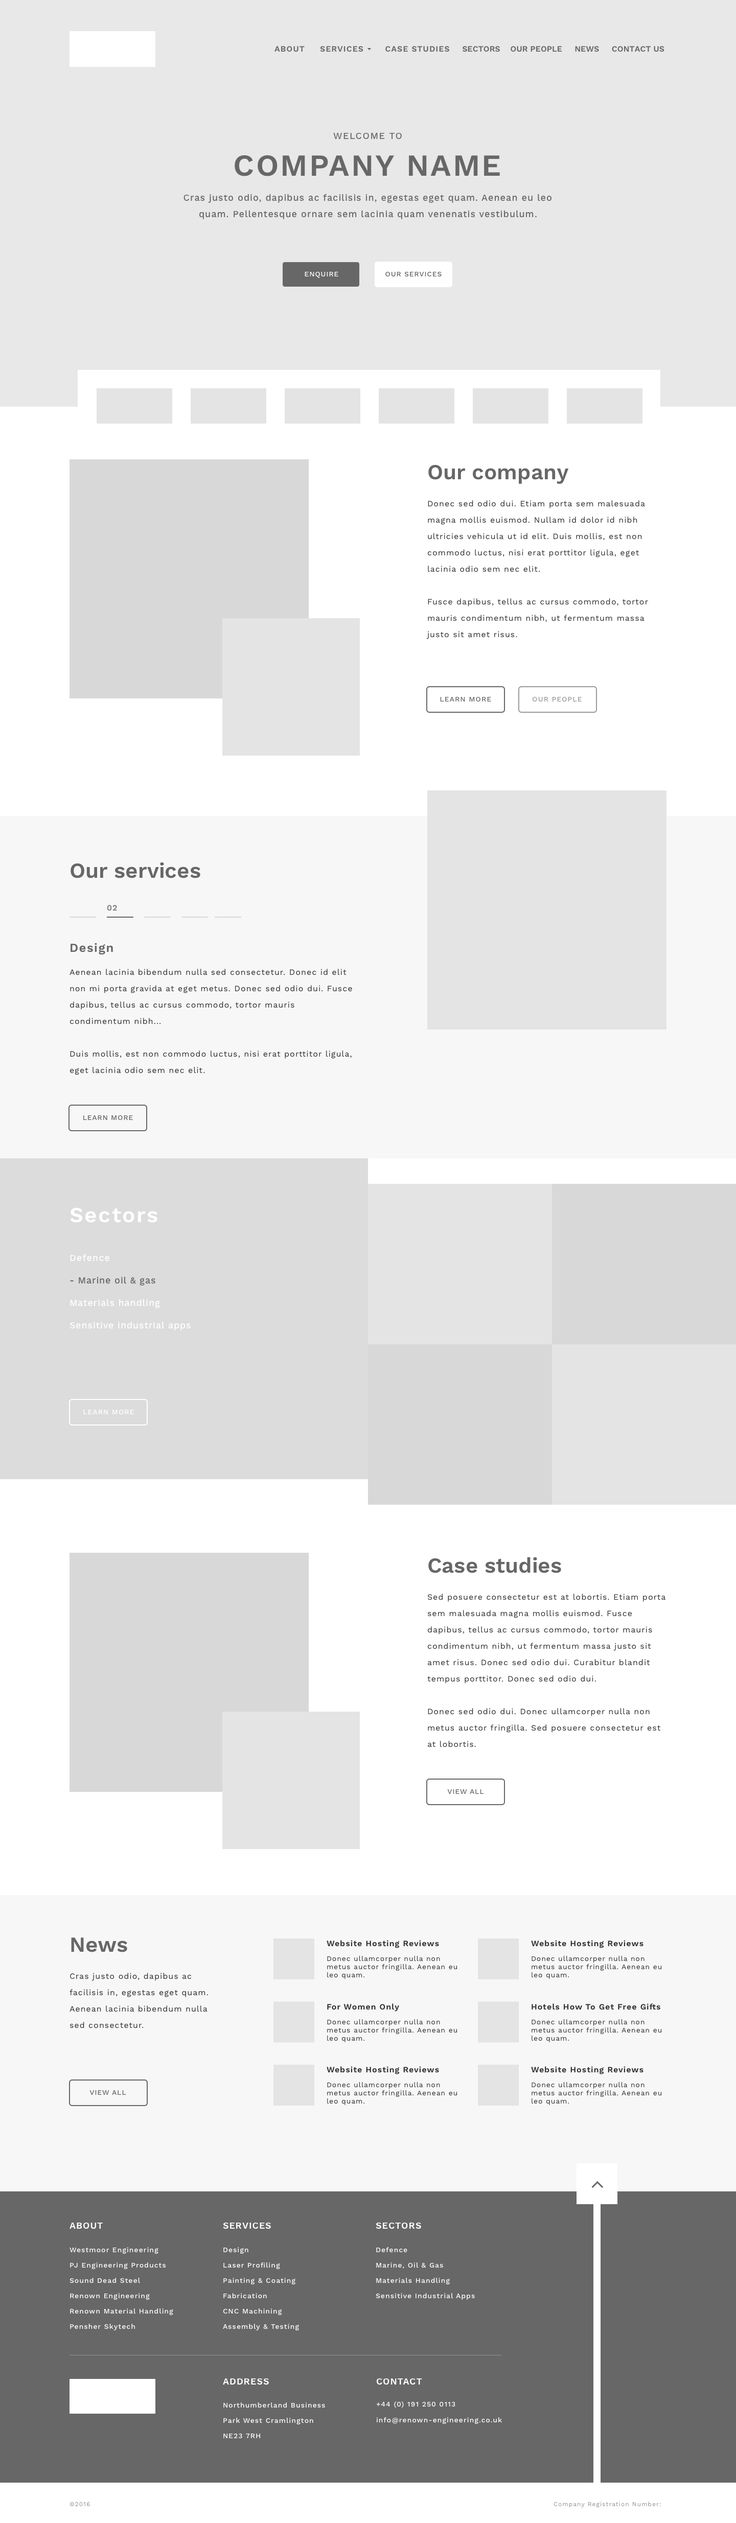 Renown wireframe homepage